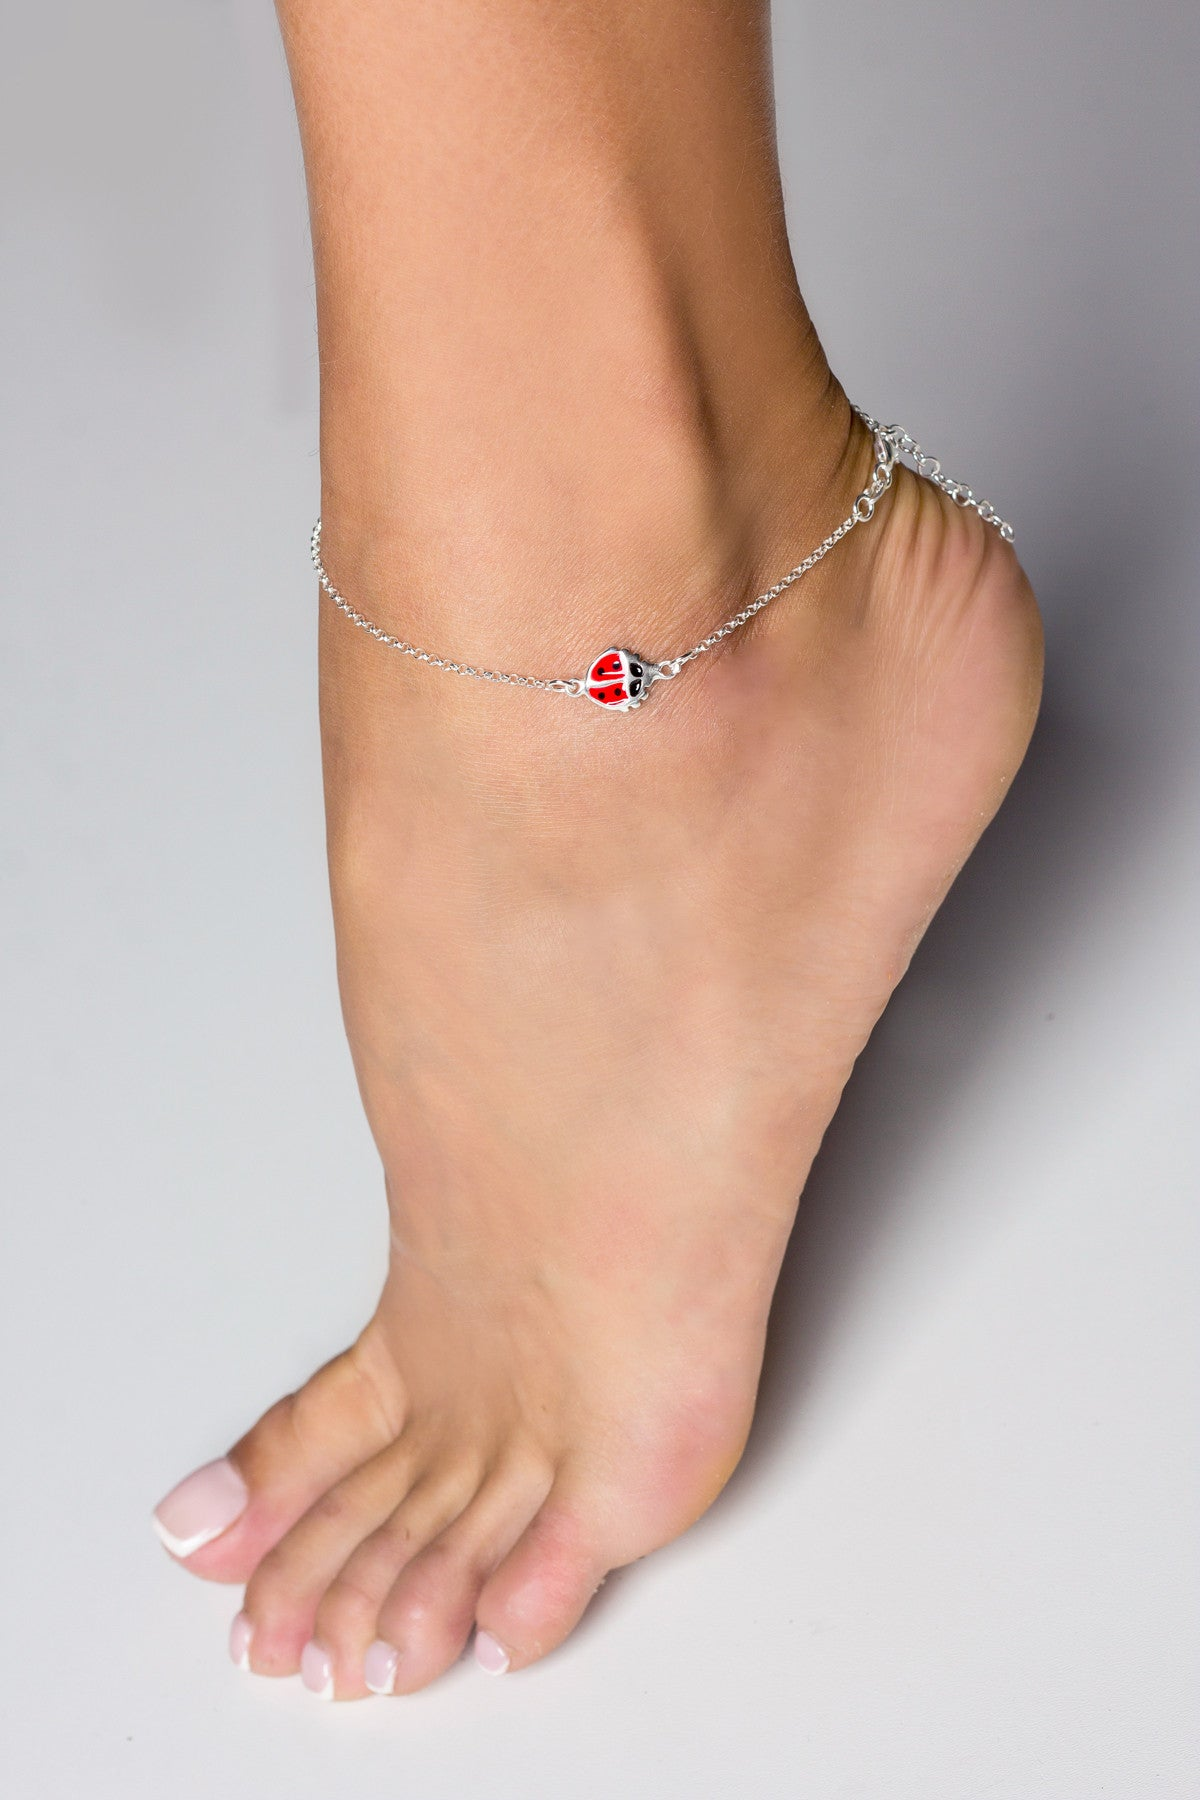 has fetish cotton color foot products it ankle natural moi bracelet me is socks celtic anklet the by jewelry bracelets my cool